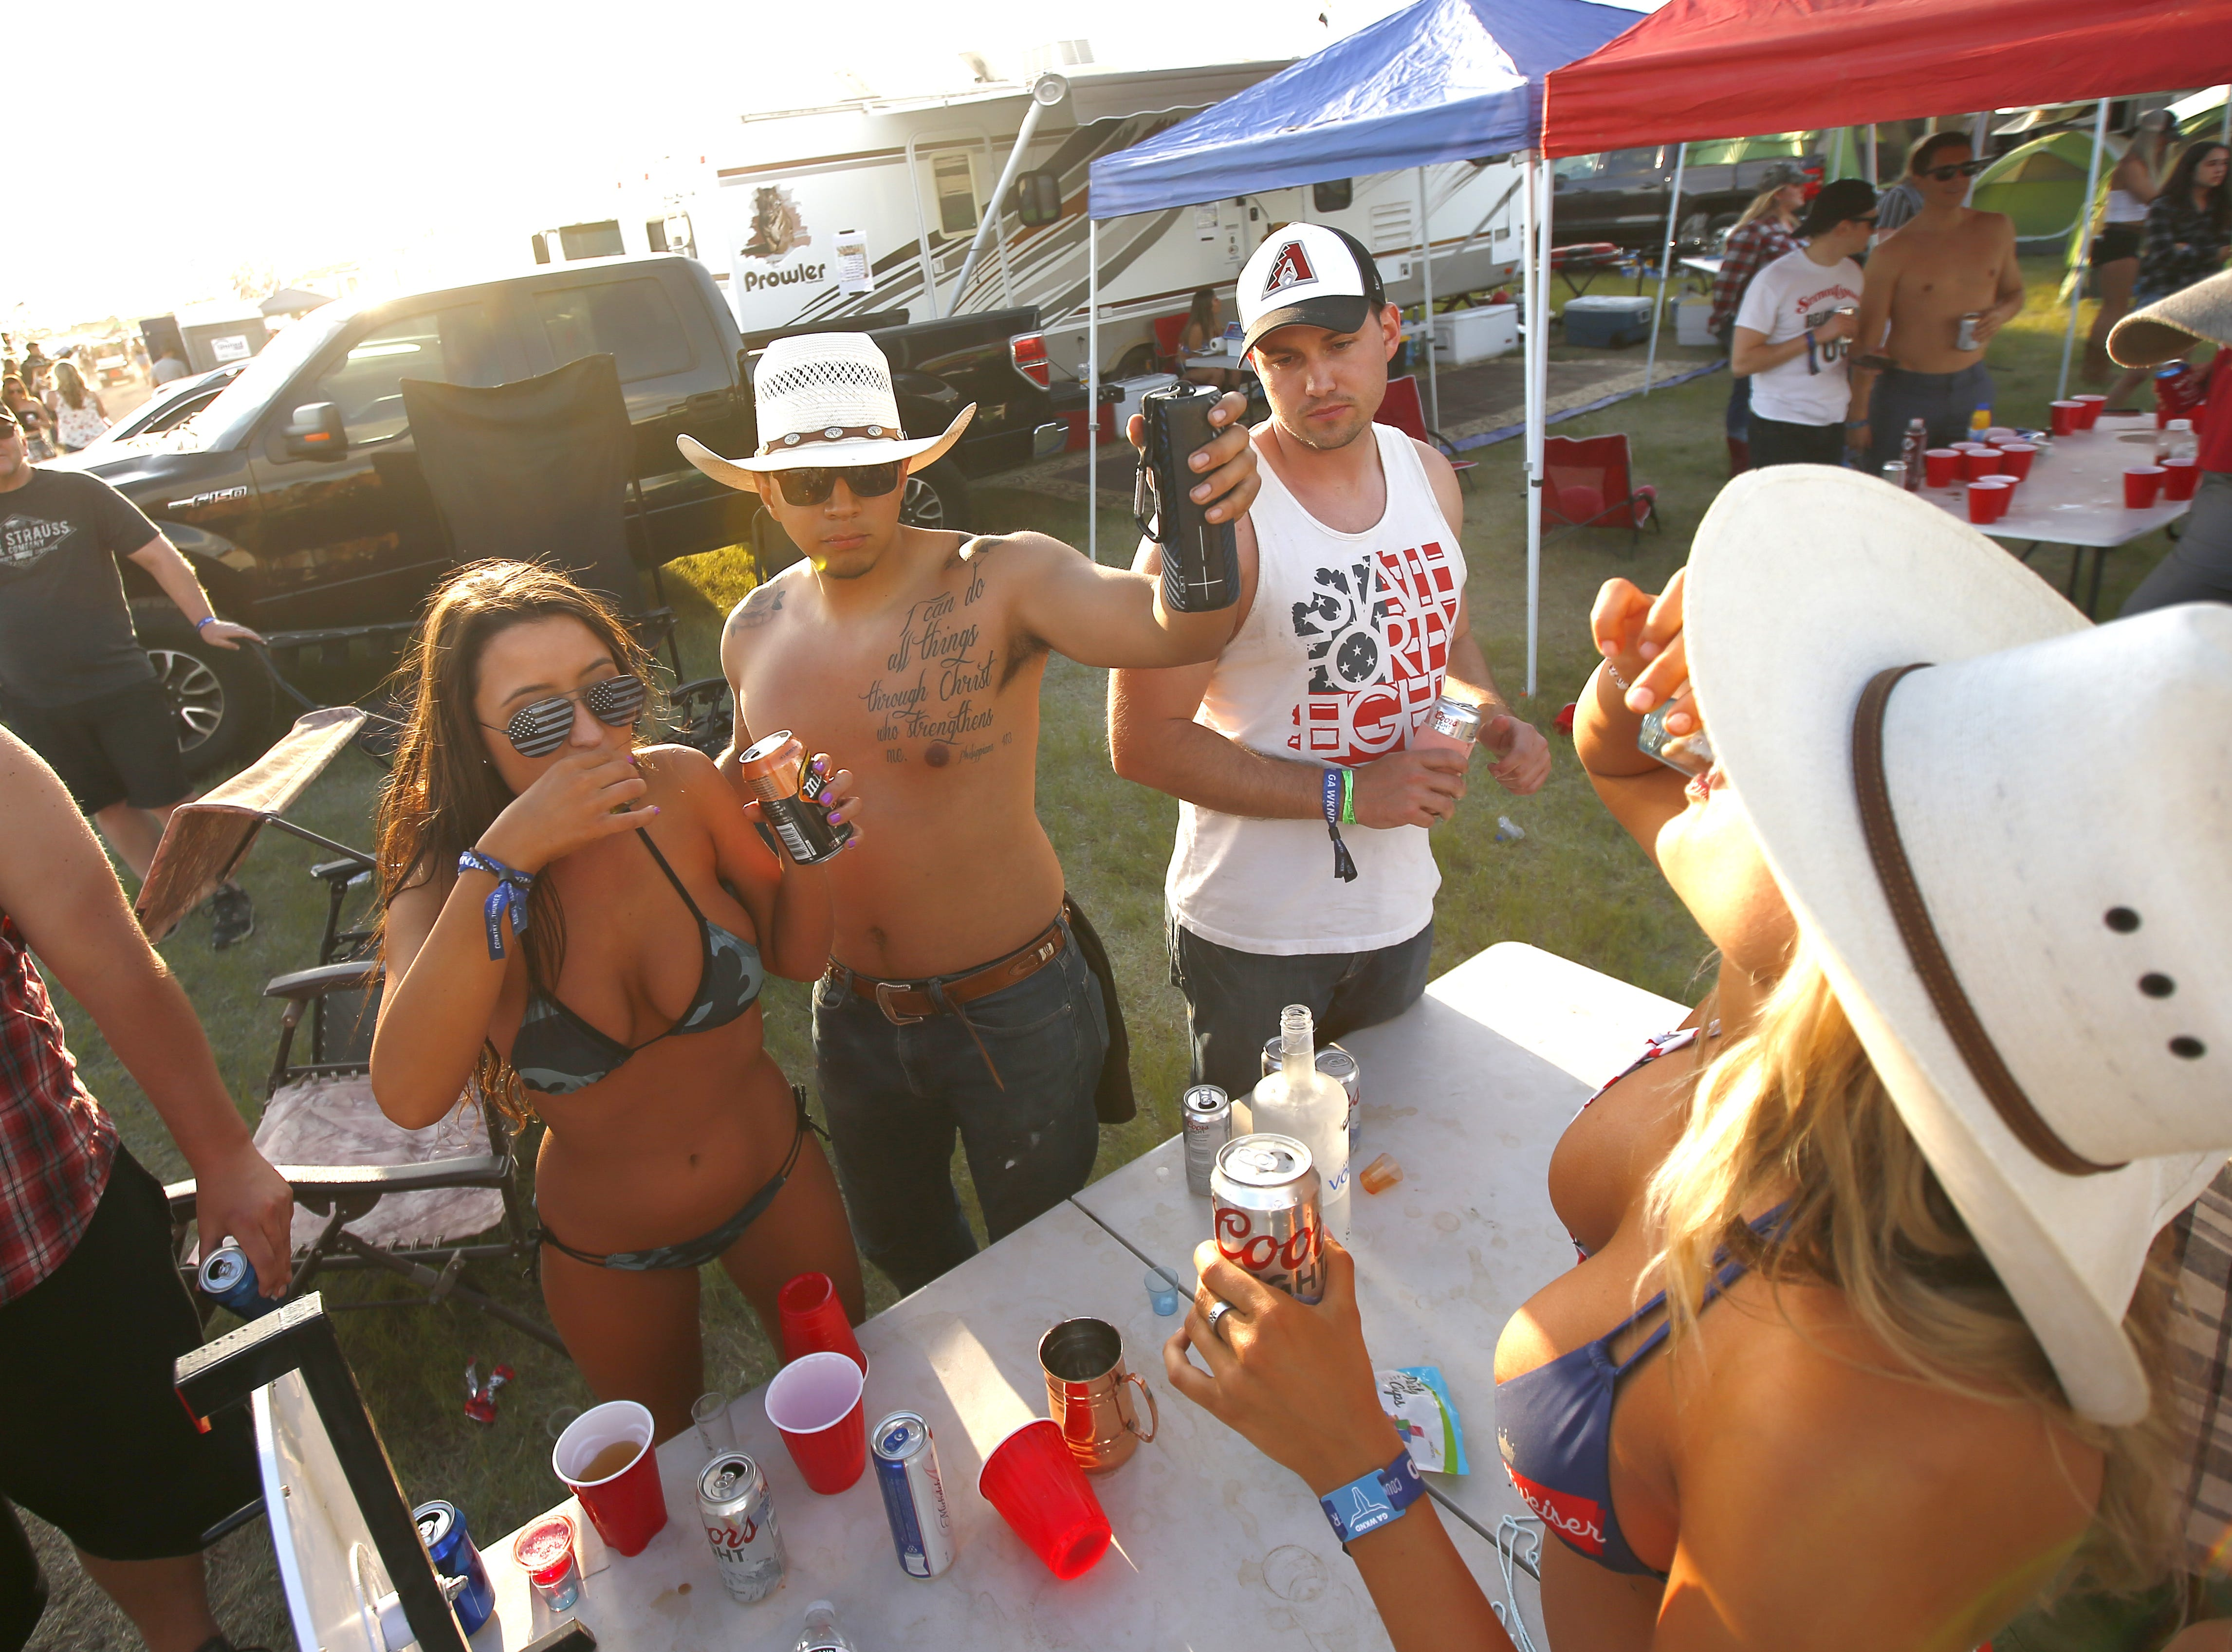 People gather for shots at the campsite Coyote during Country Thunder in Florence, Ariz. on Friday, April 12, 2019.